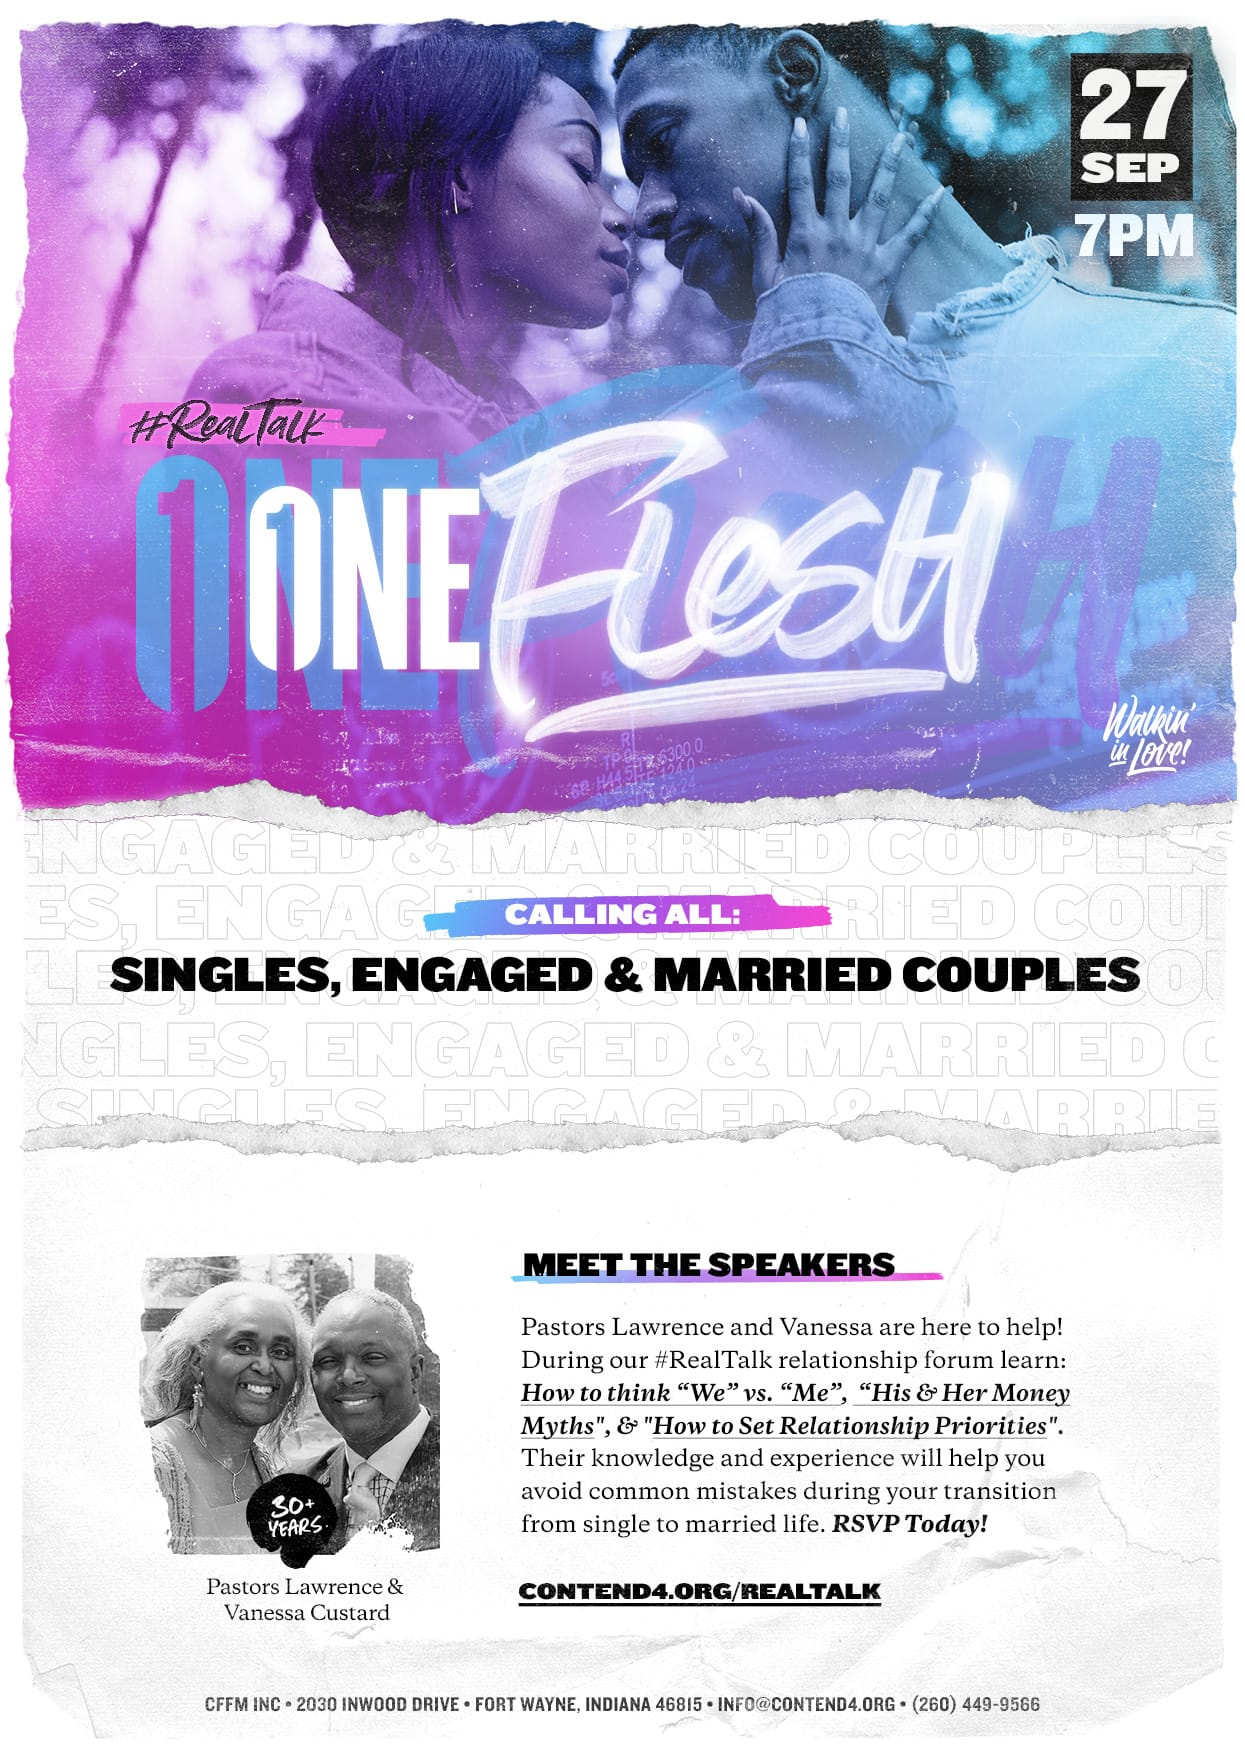 #RealTalk One Flesh Event Flyer Singles Engaged Married Couples